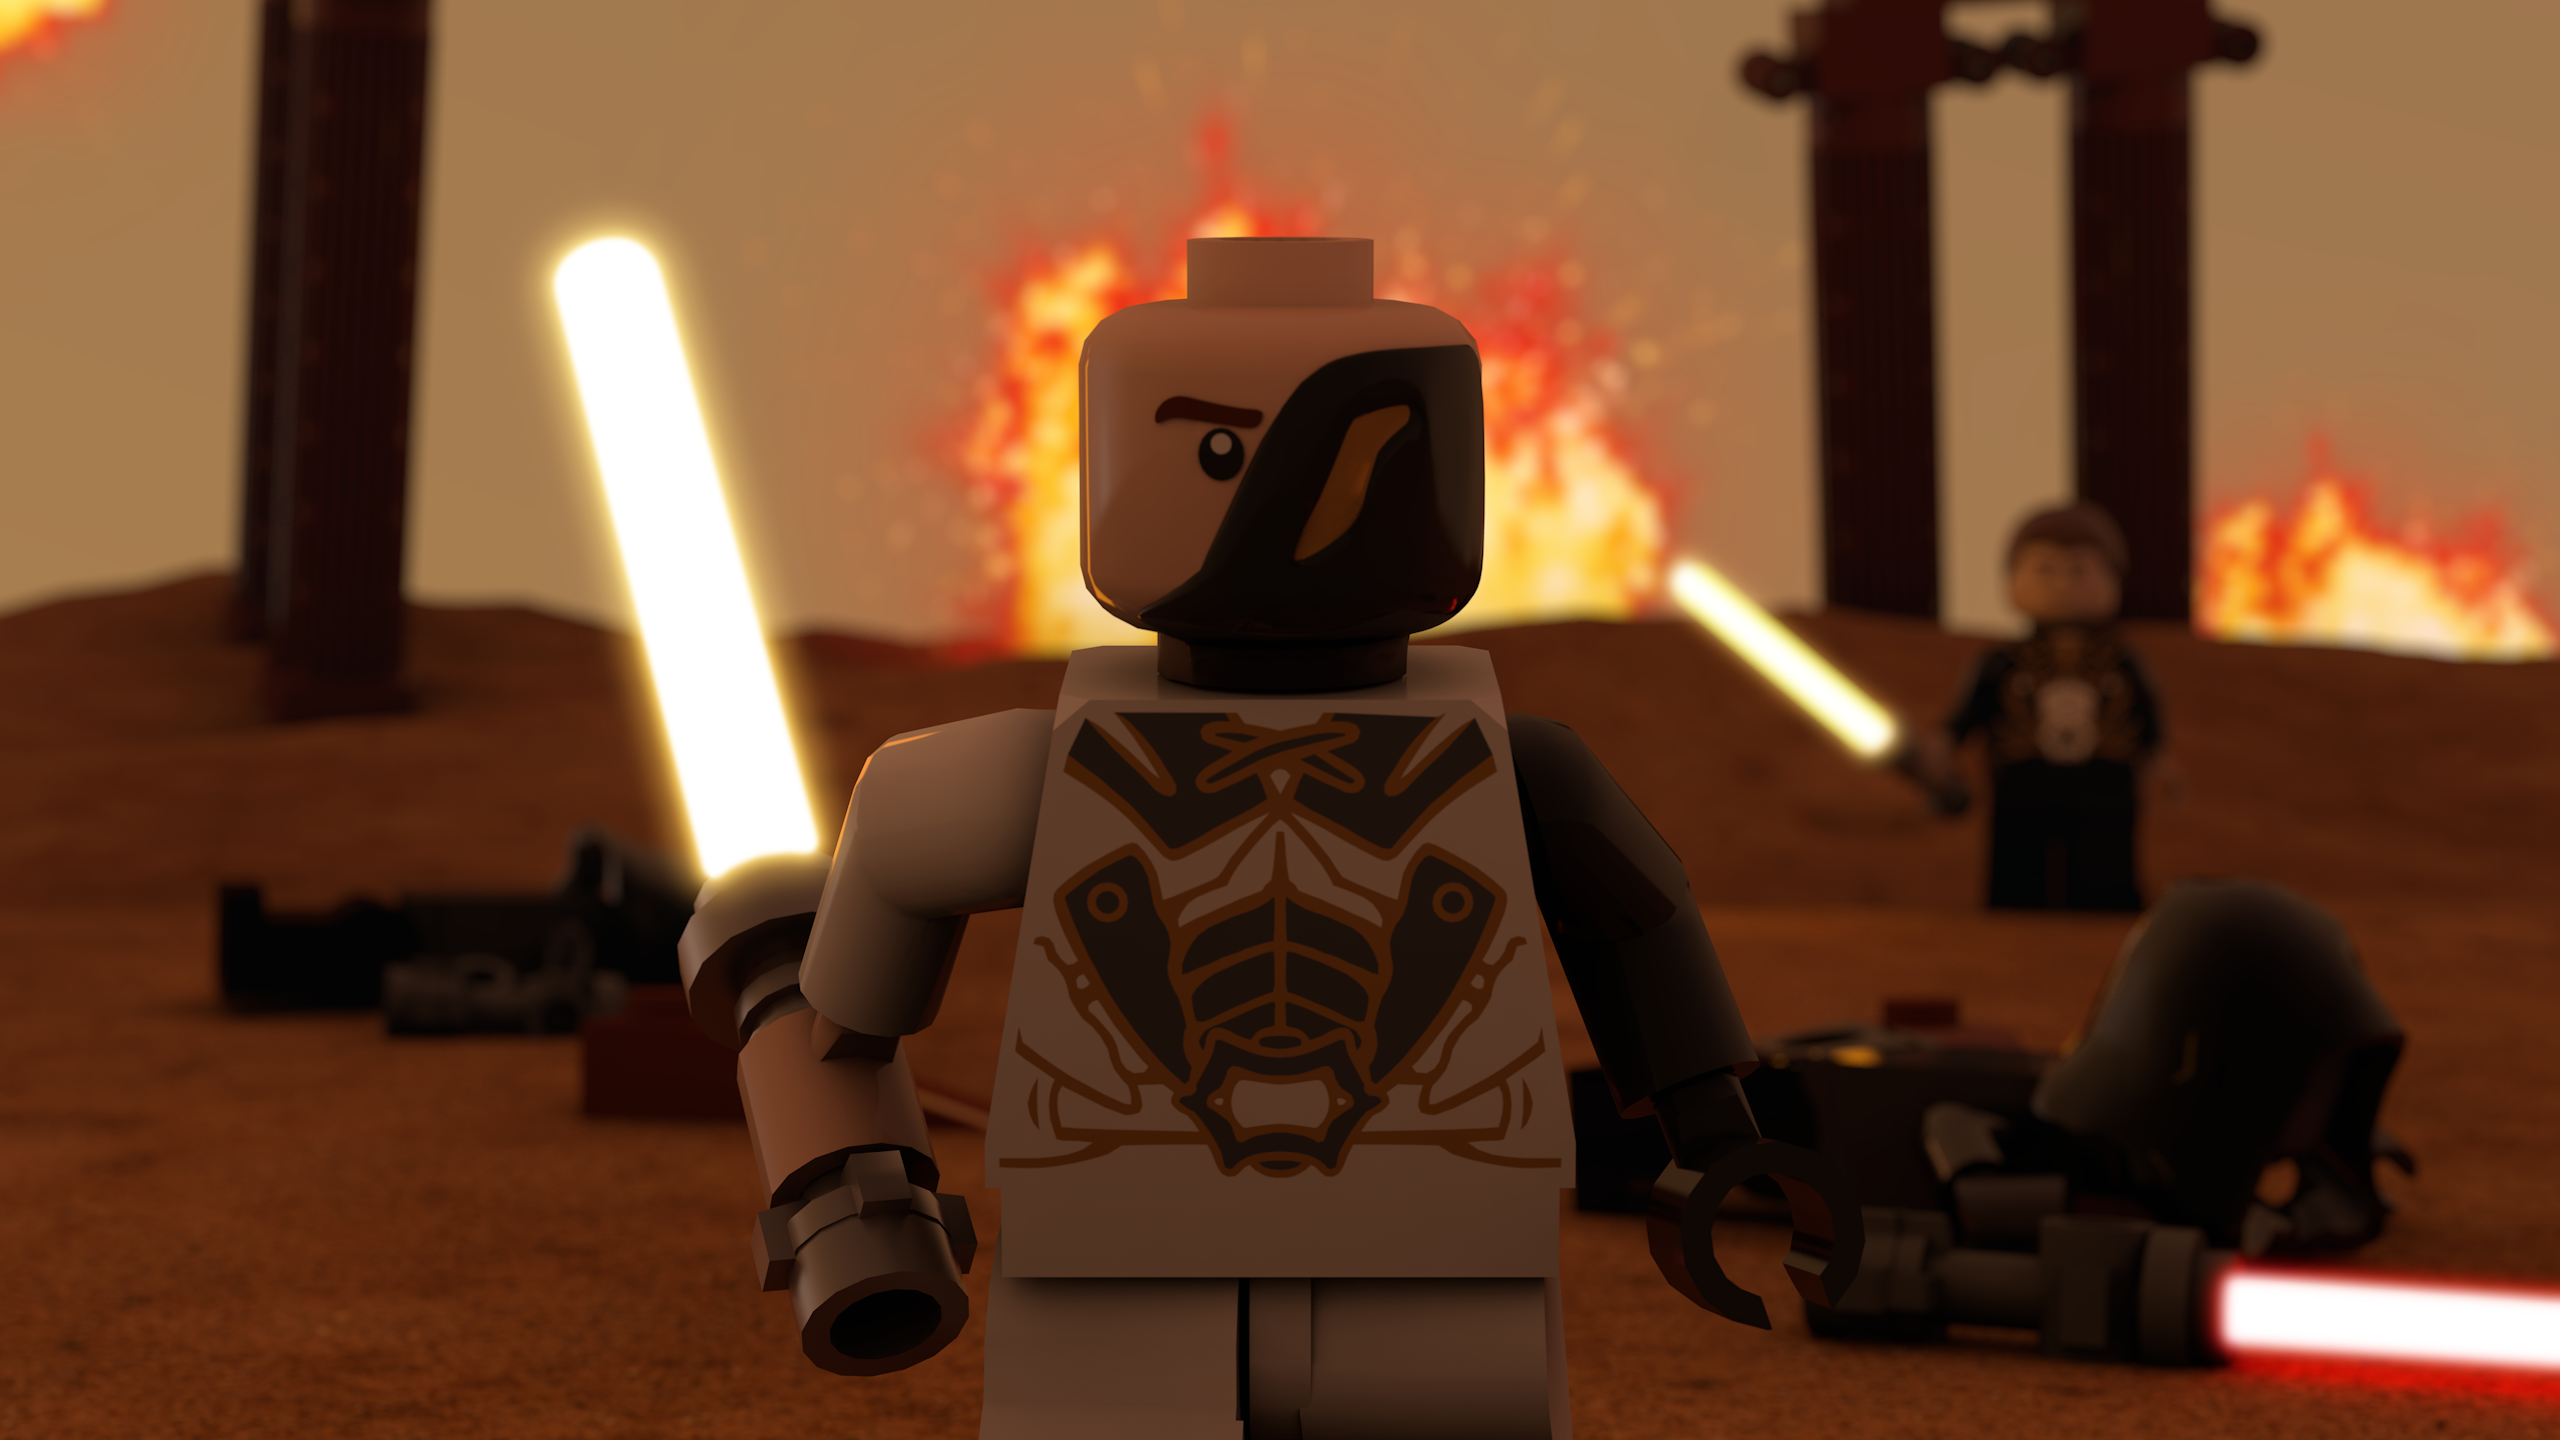 knights_of_the_fallen_empire_in_lego___part_ii_by_qeusen-d97qkd0